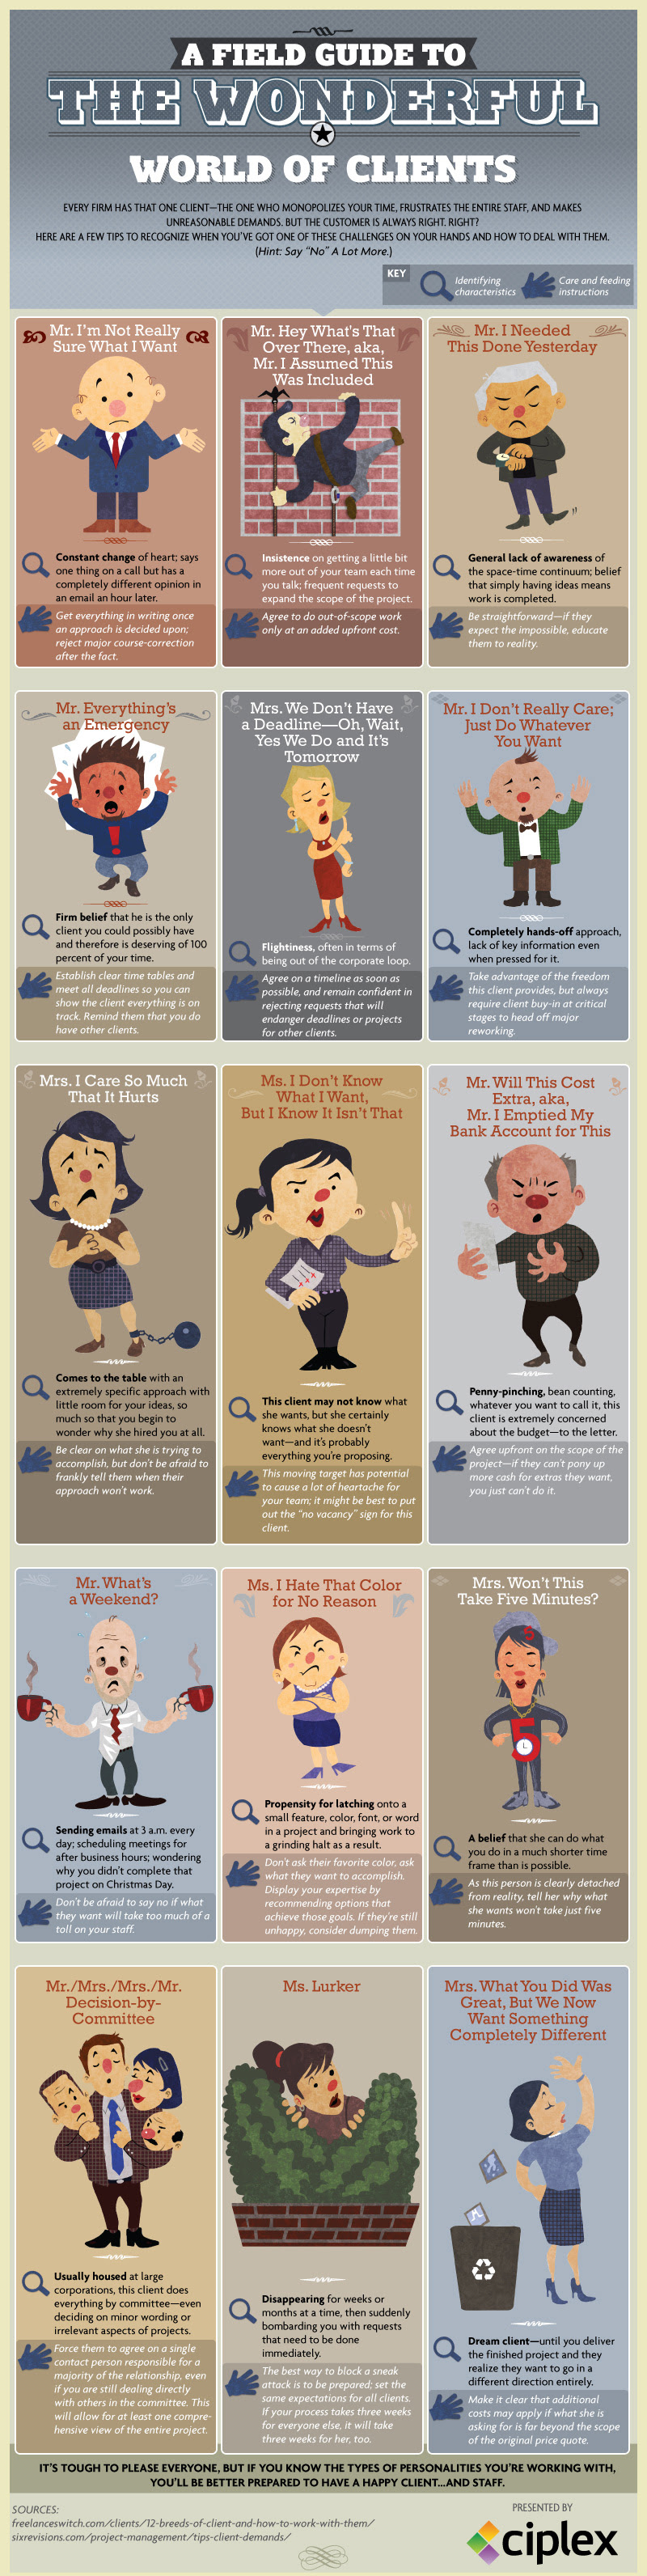 Infographic: An Field Guide To The Wonderful World Of Clients